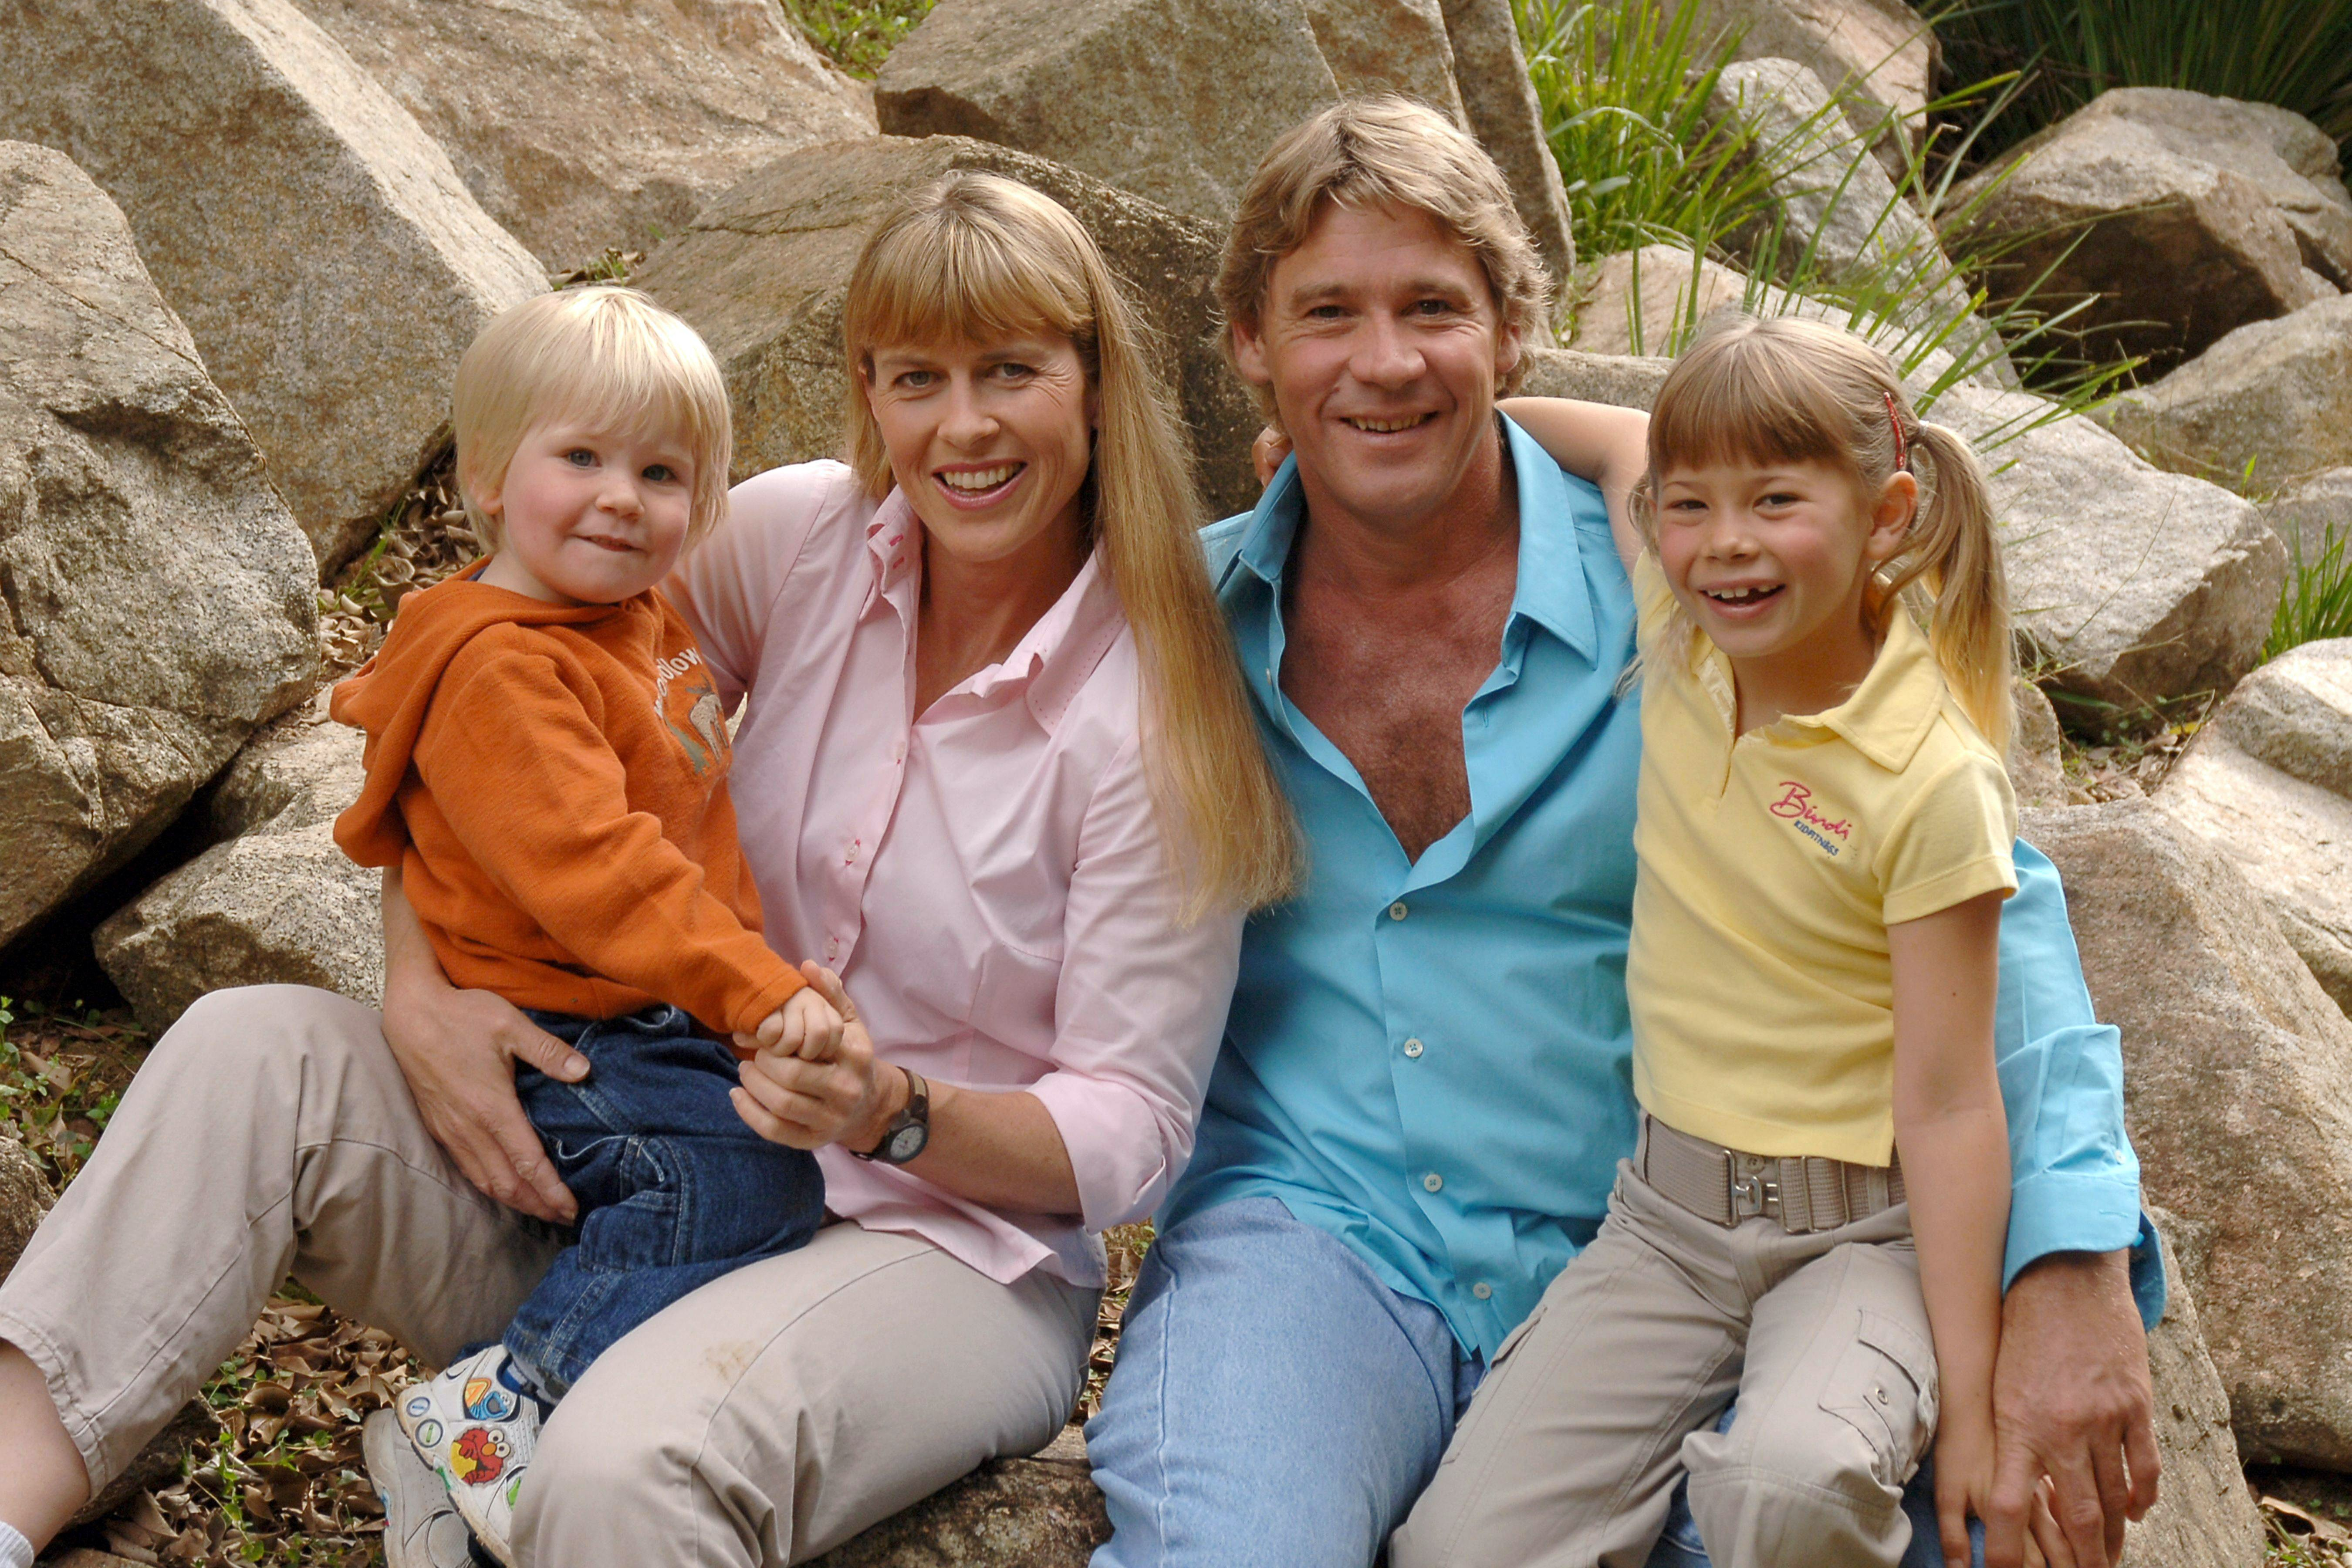 Steve Irwin poses with his family at Australia Zoo June 19, 2006 | Photo: GettyImages